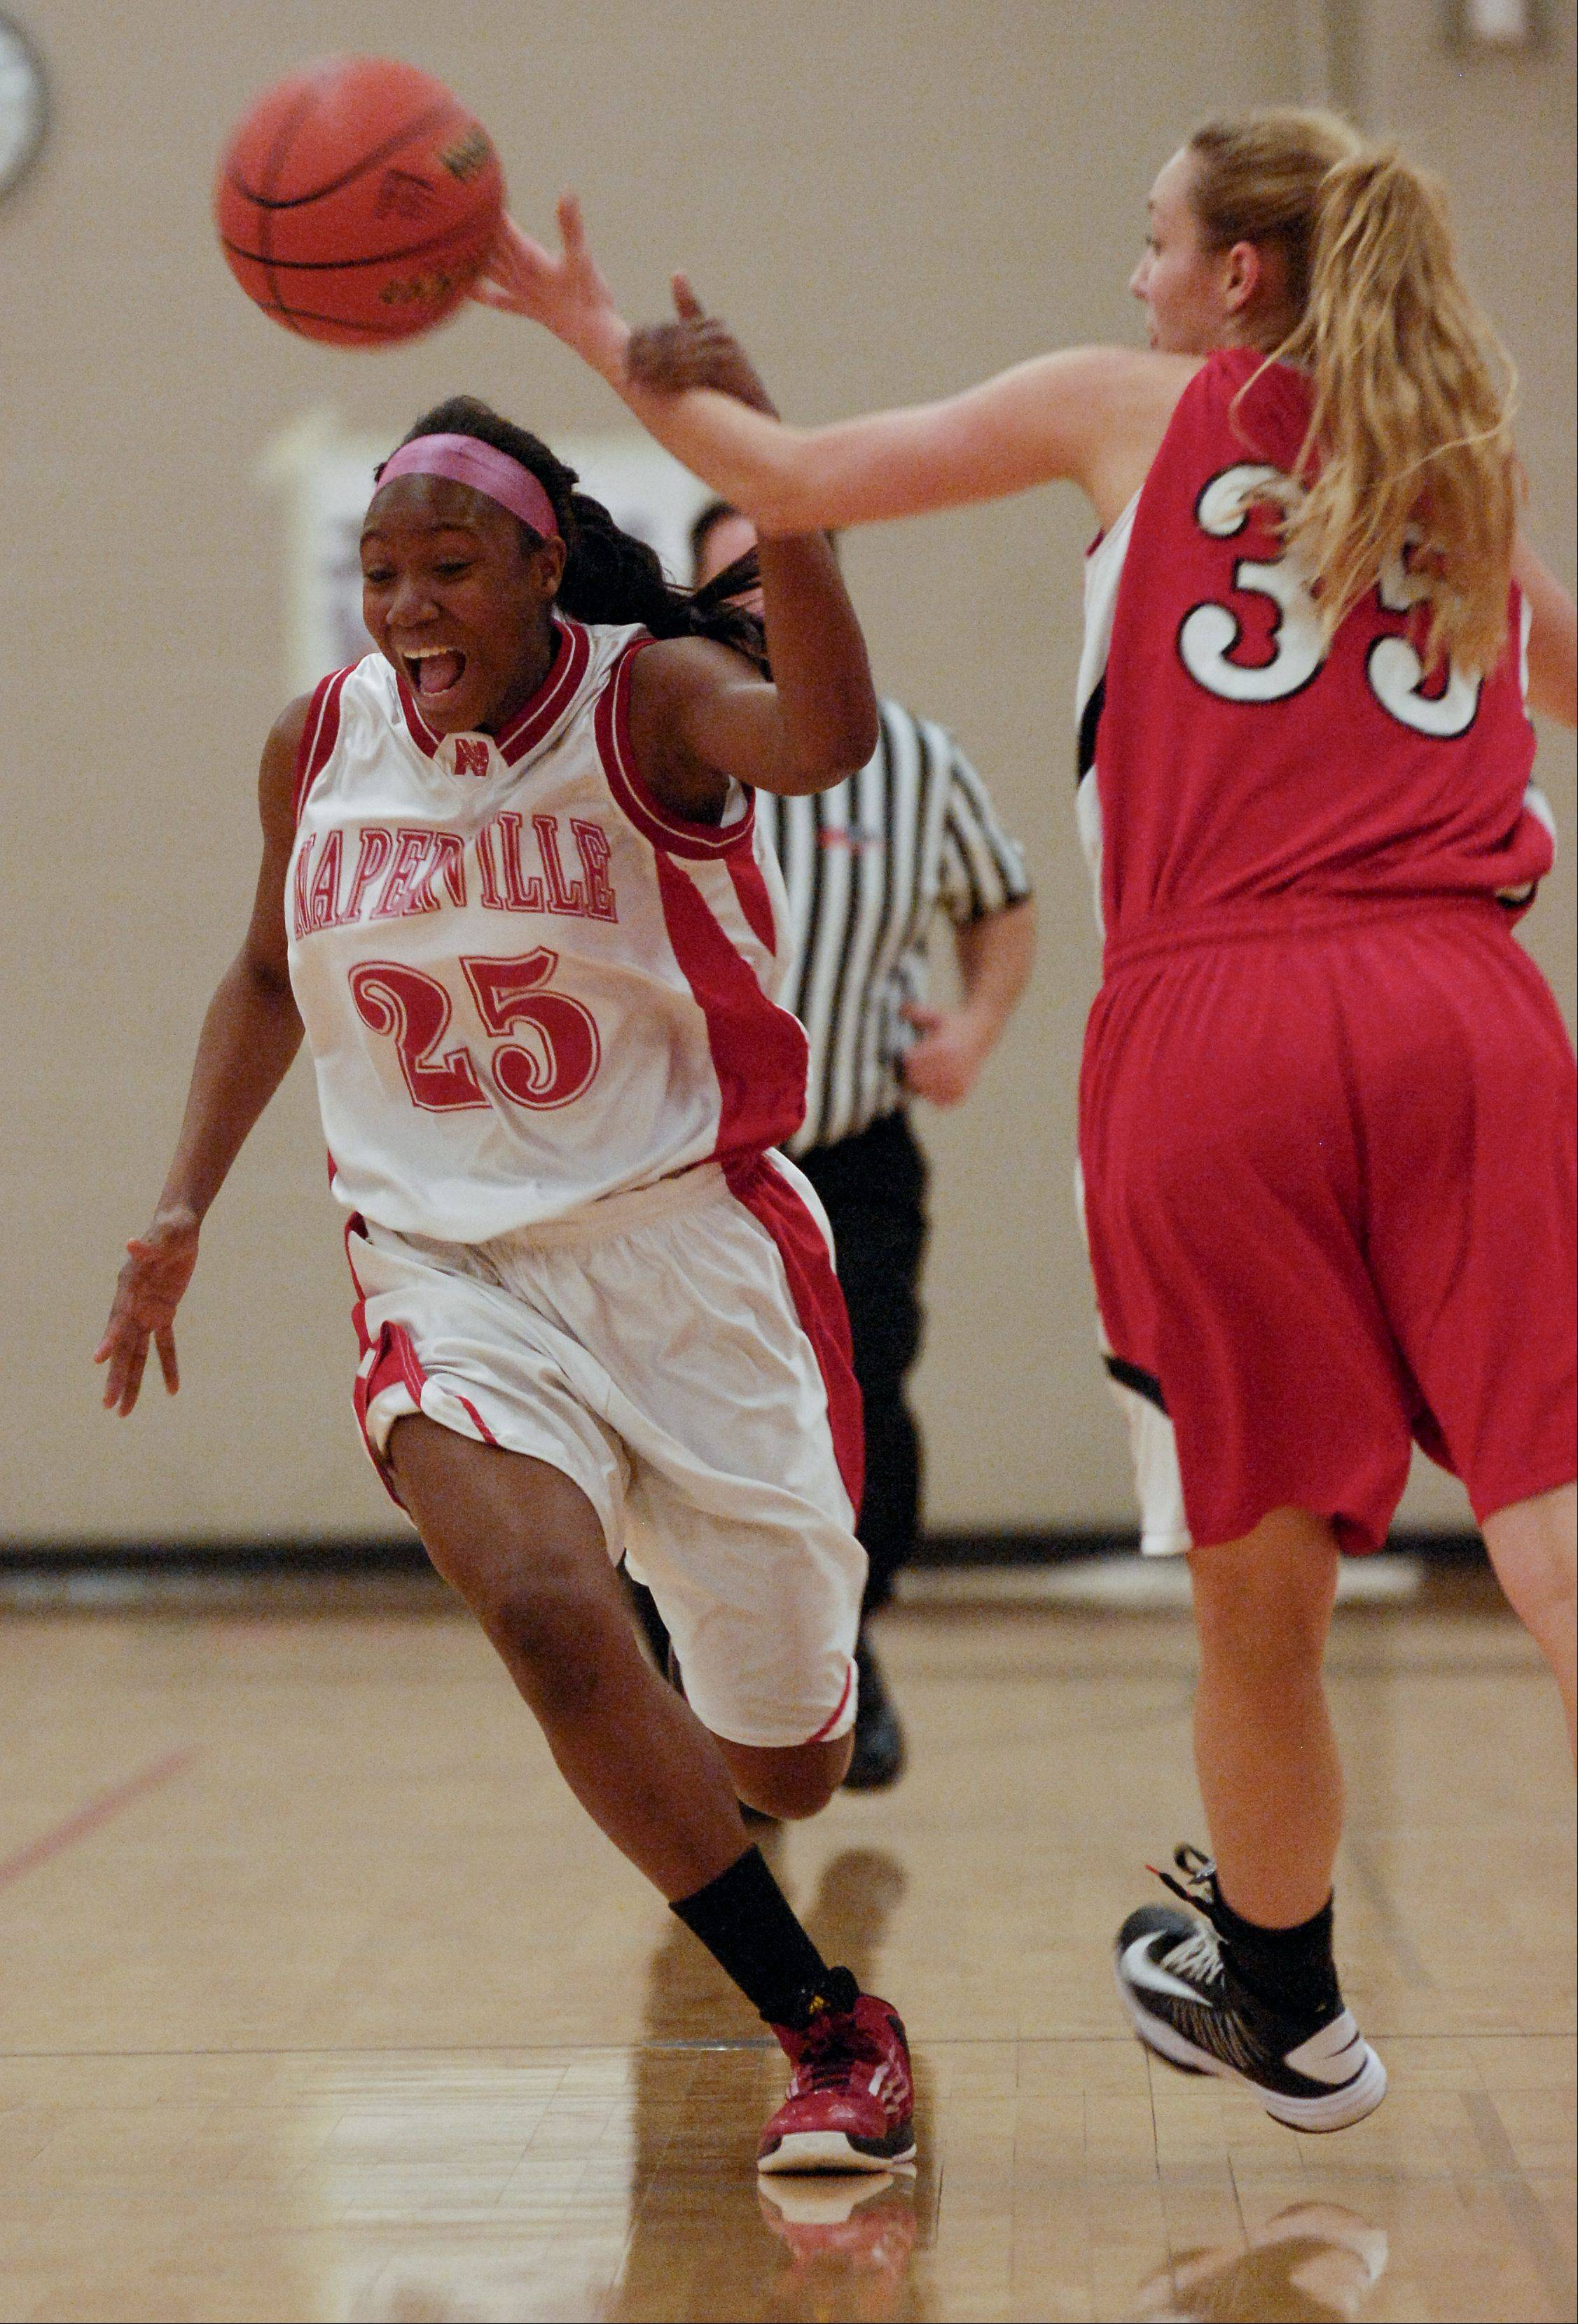 Naperville Central's Cierra Stanciel gives up control of the ball to Benet's Emily Eshoo during Thursday's Class 4A regional final basketball game in Lisle.